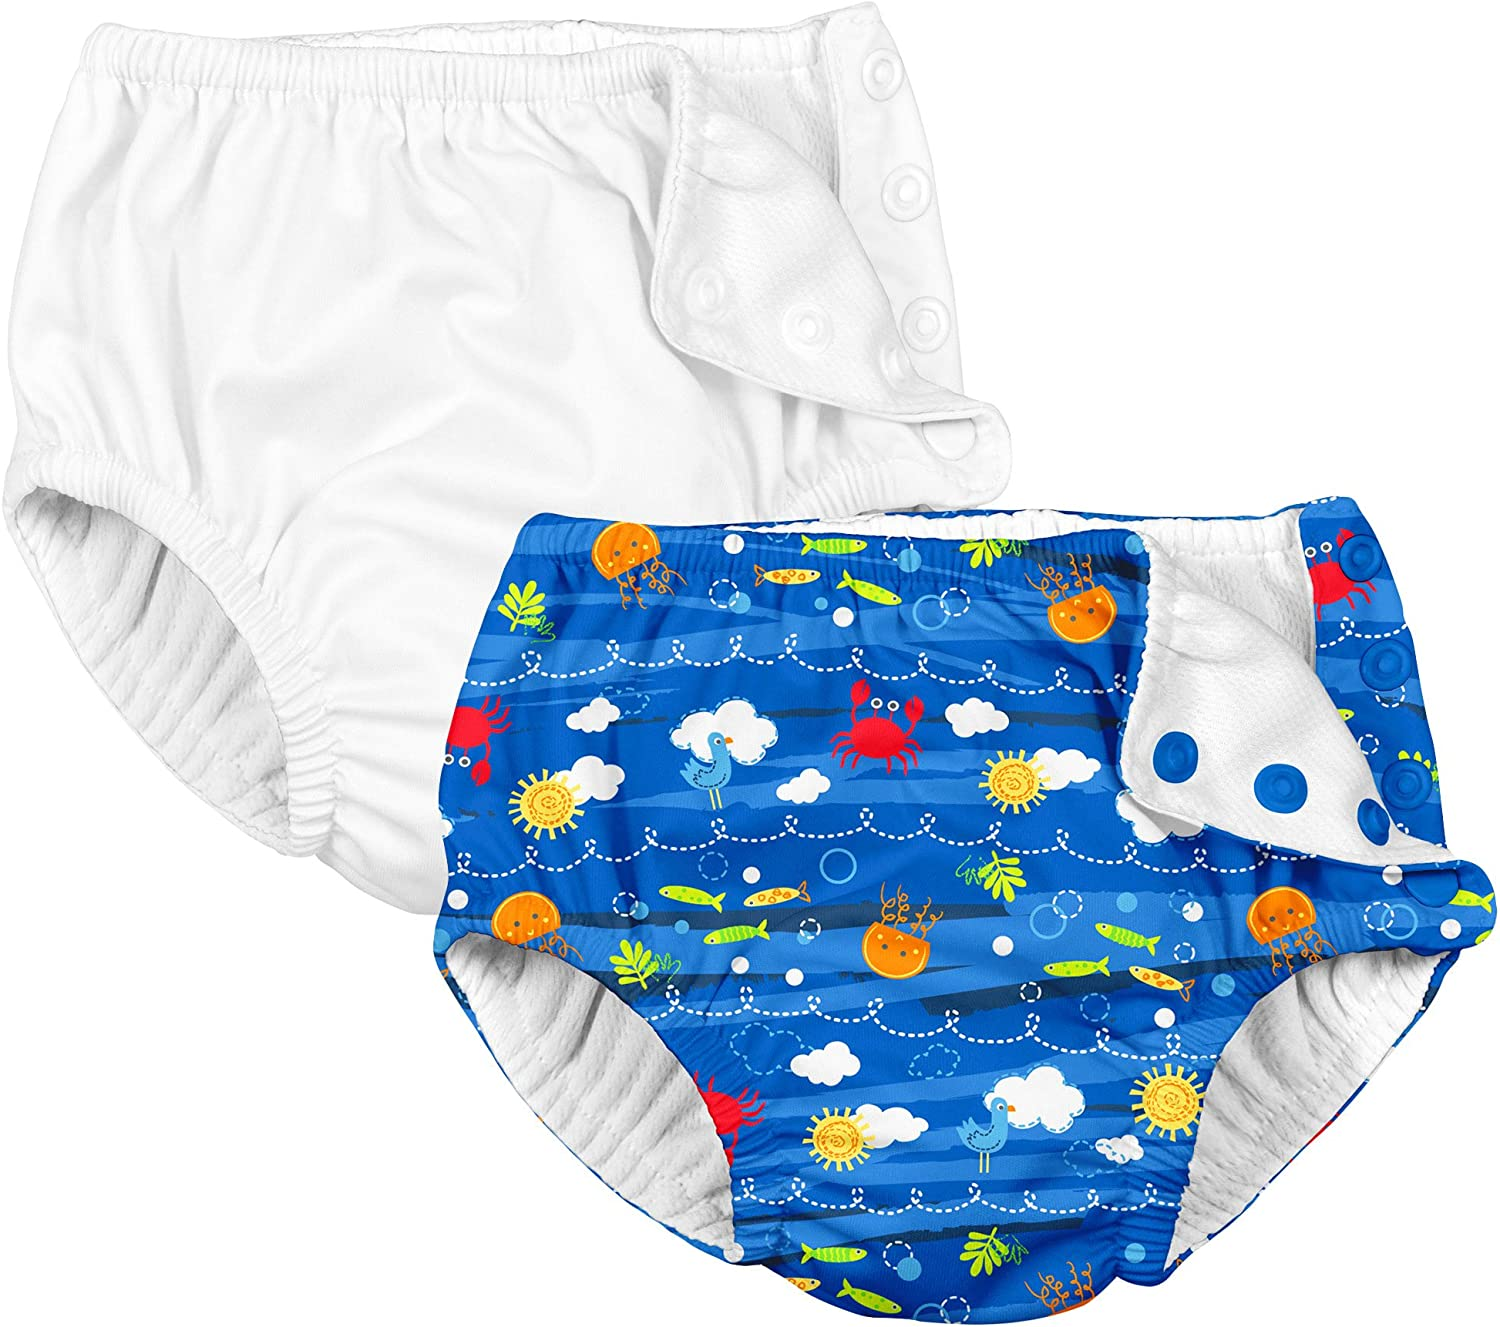 Boys Reusable Absorbent Swim Diapers 2 Pack i play